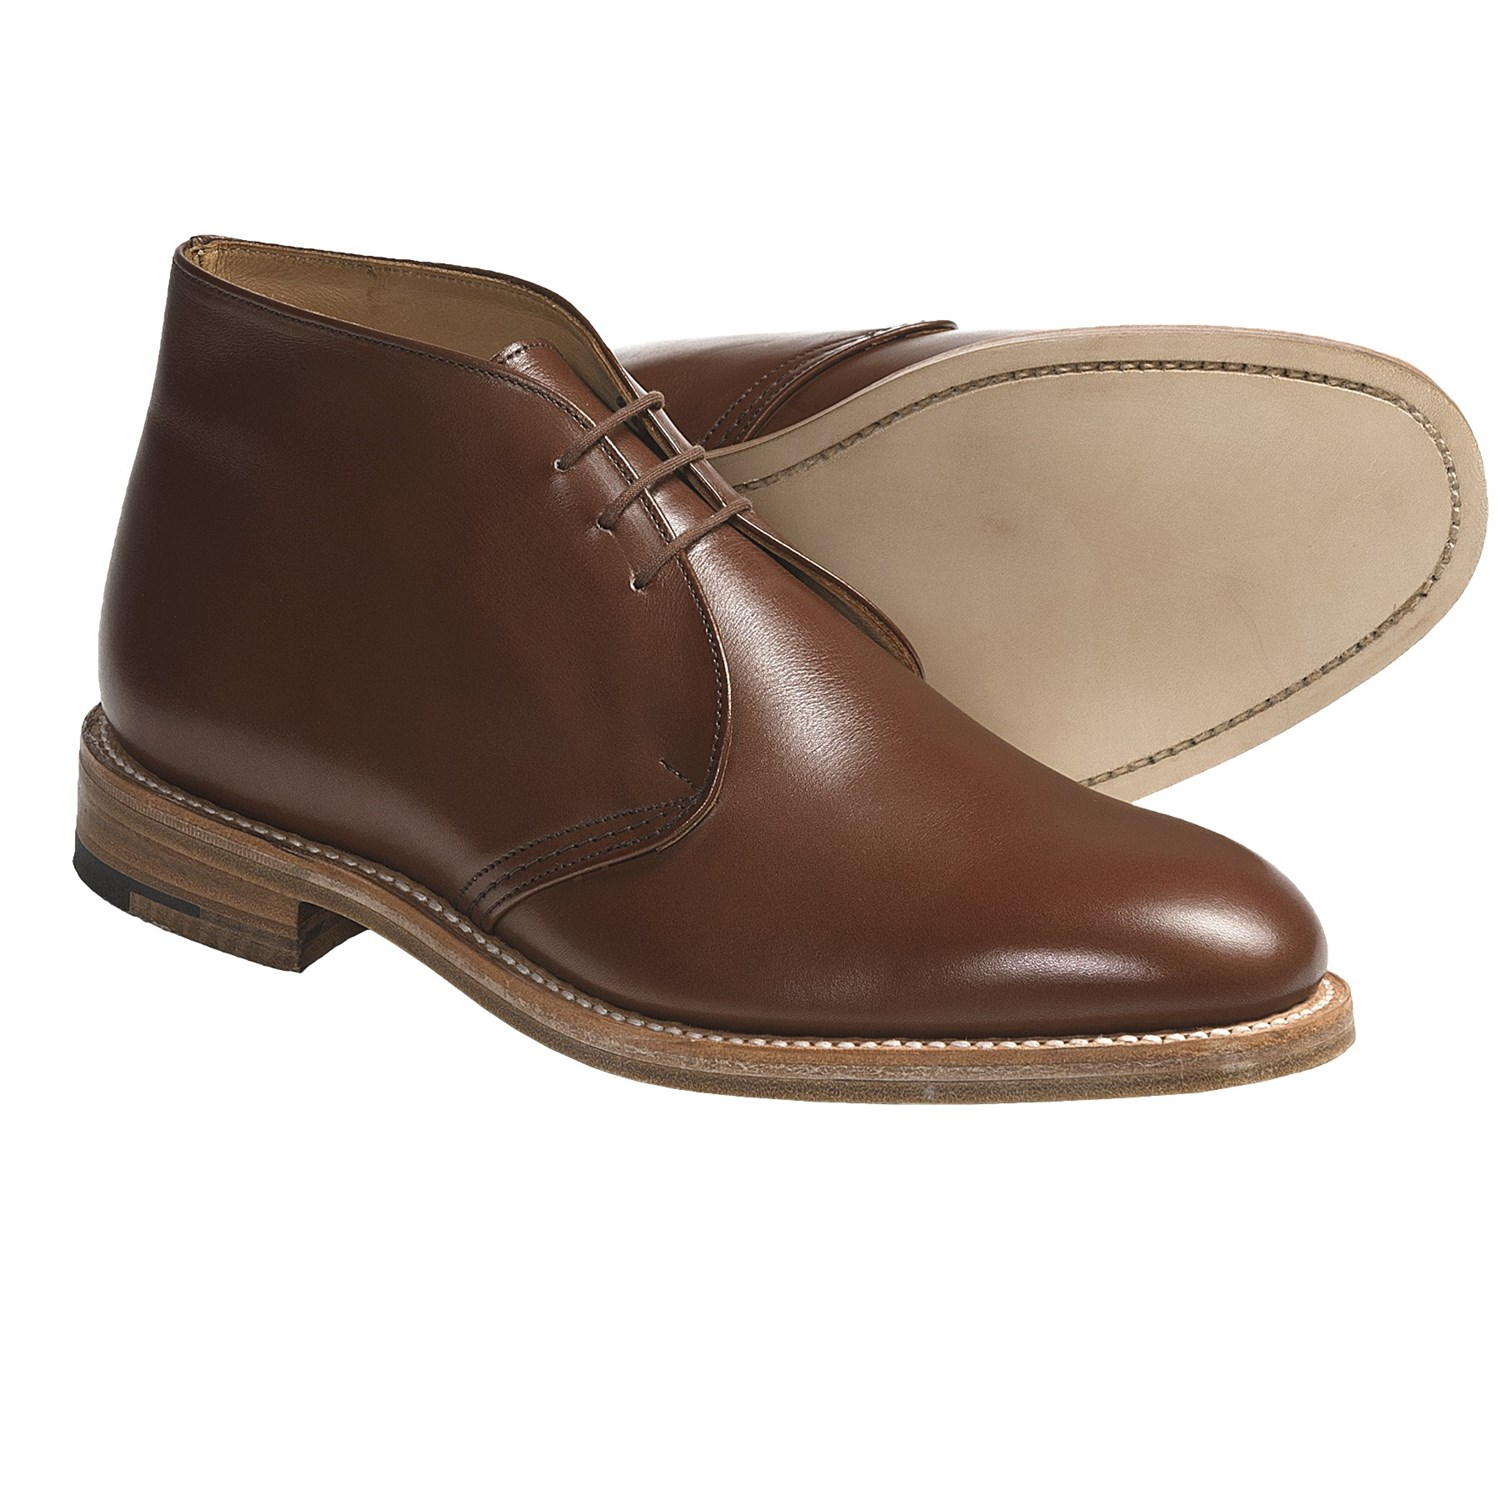 Leather Chukka Boots Men rRoha6nu